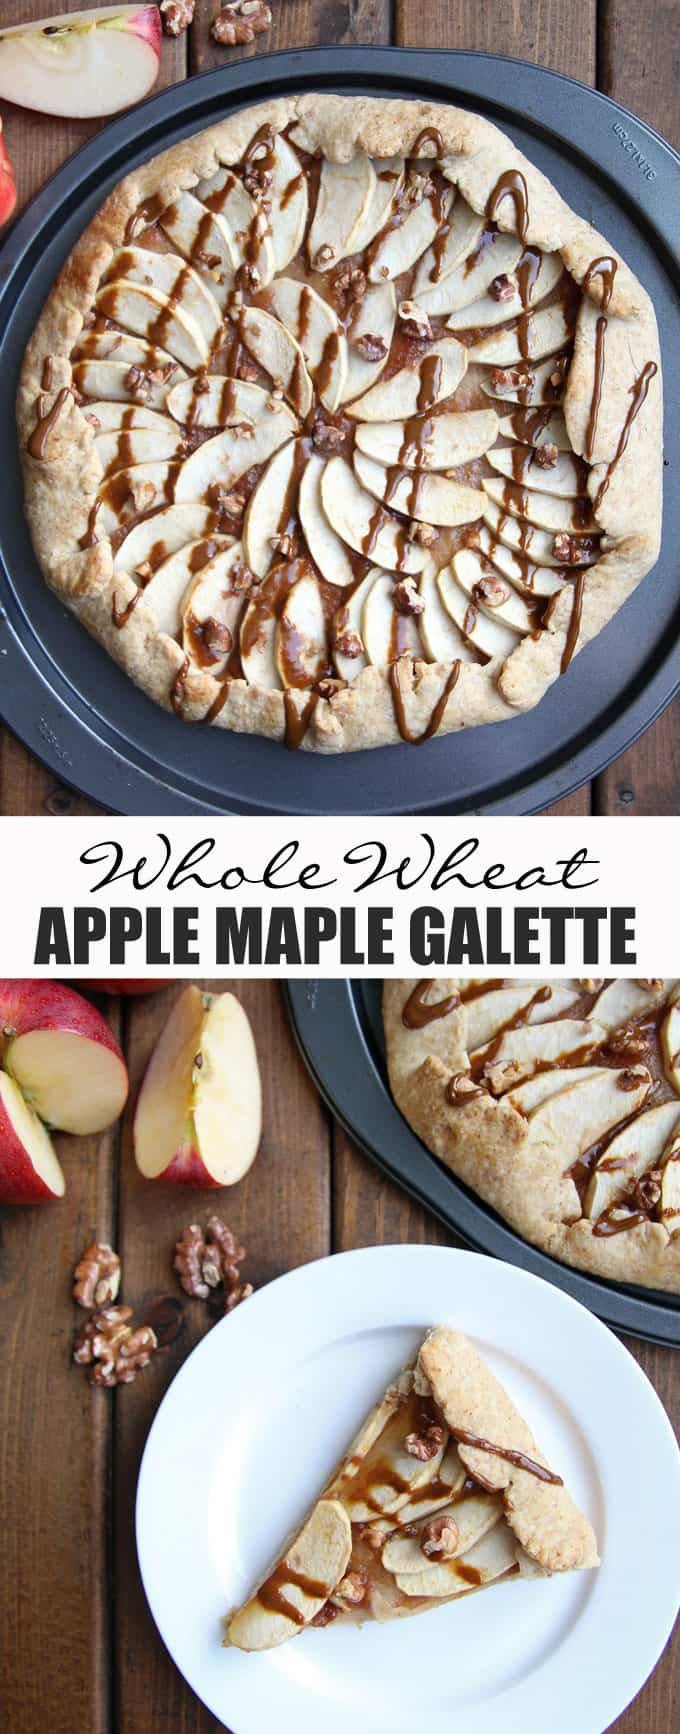 Rustic Apple Maple Galette made with Whole Wheat Flour and a refined sugar free option.